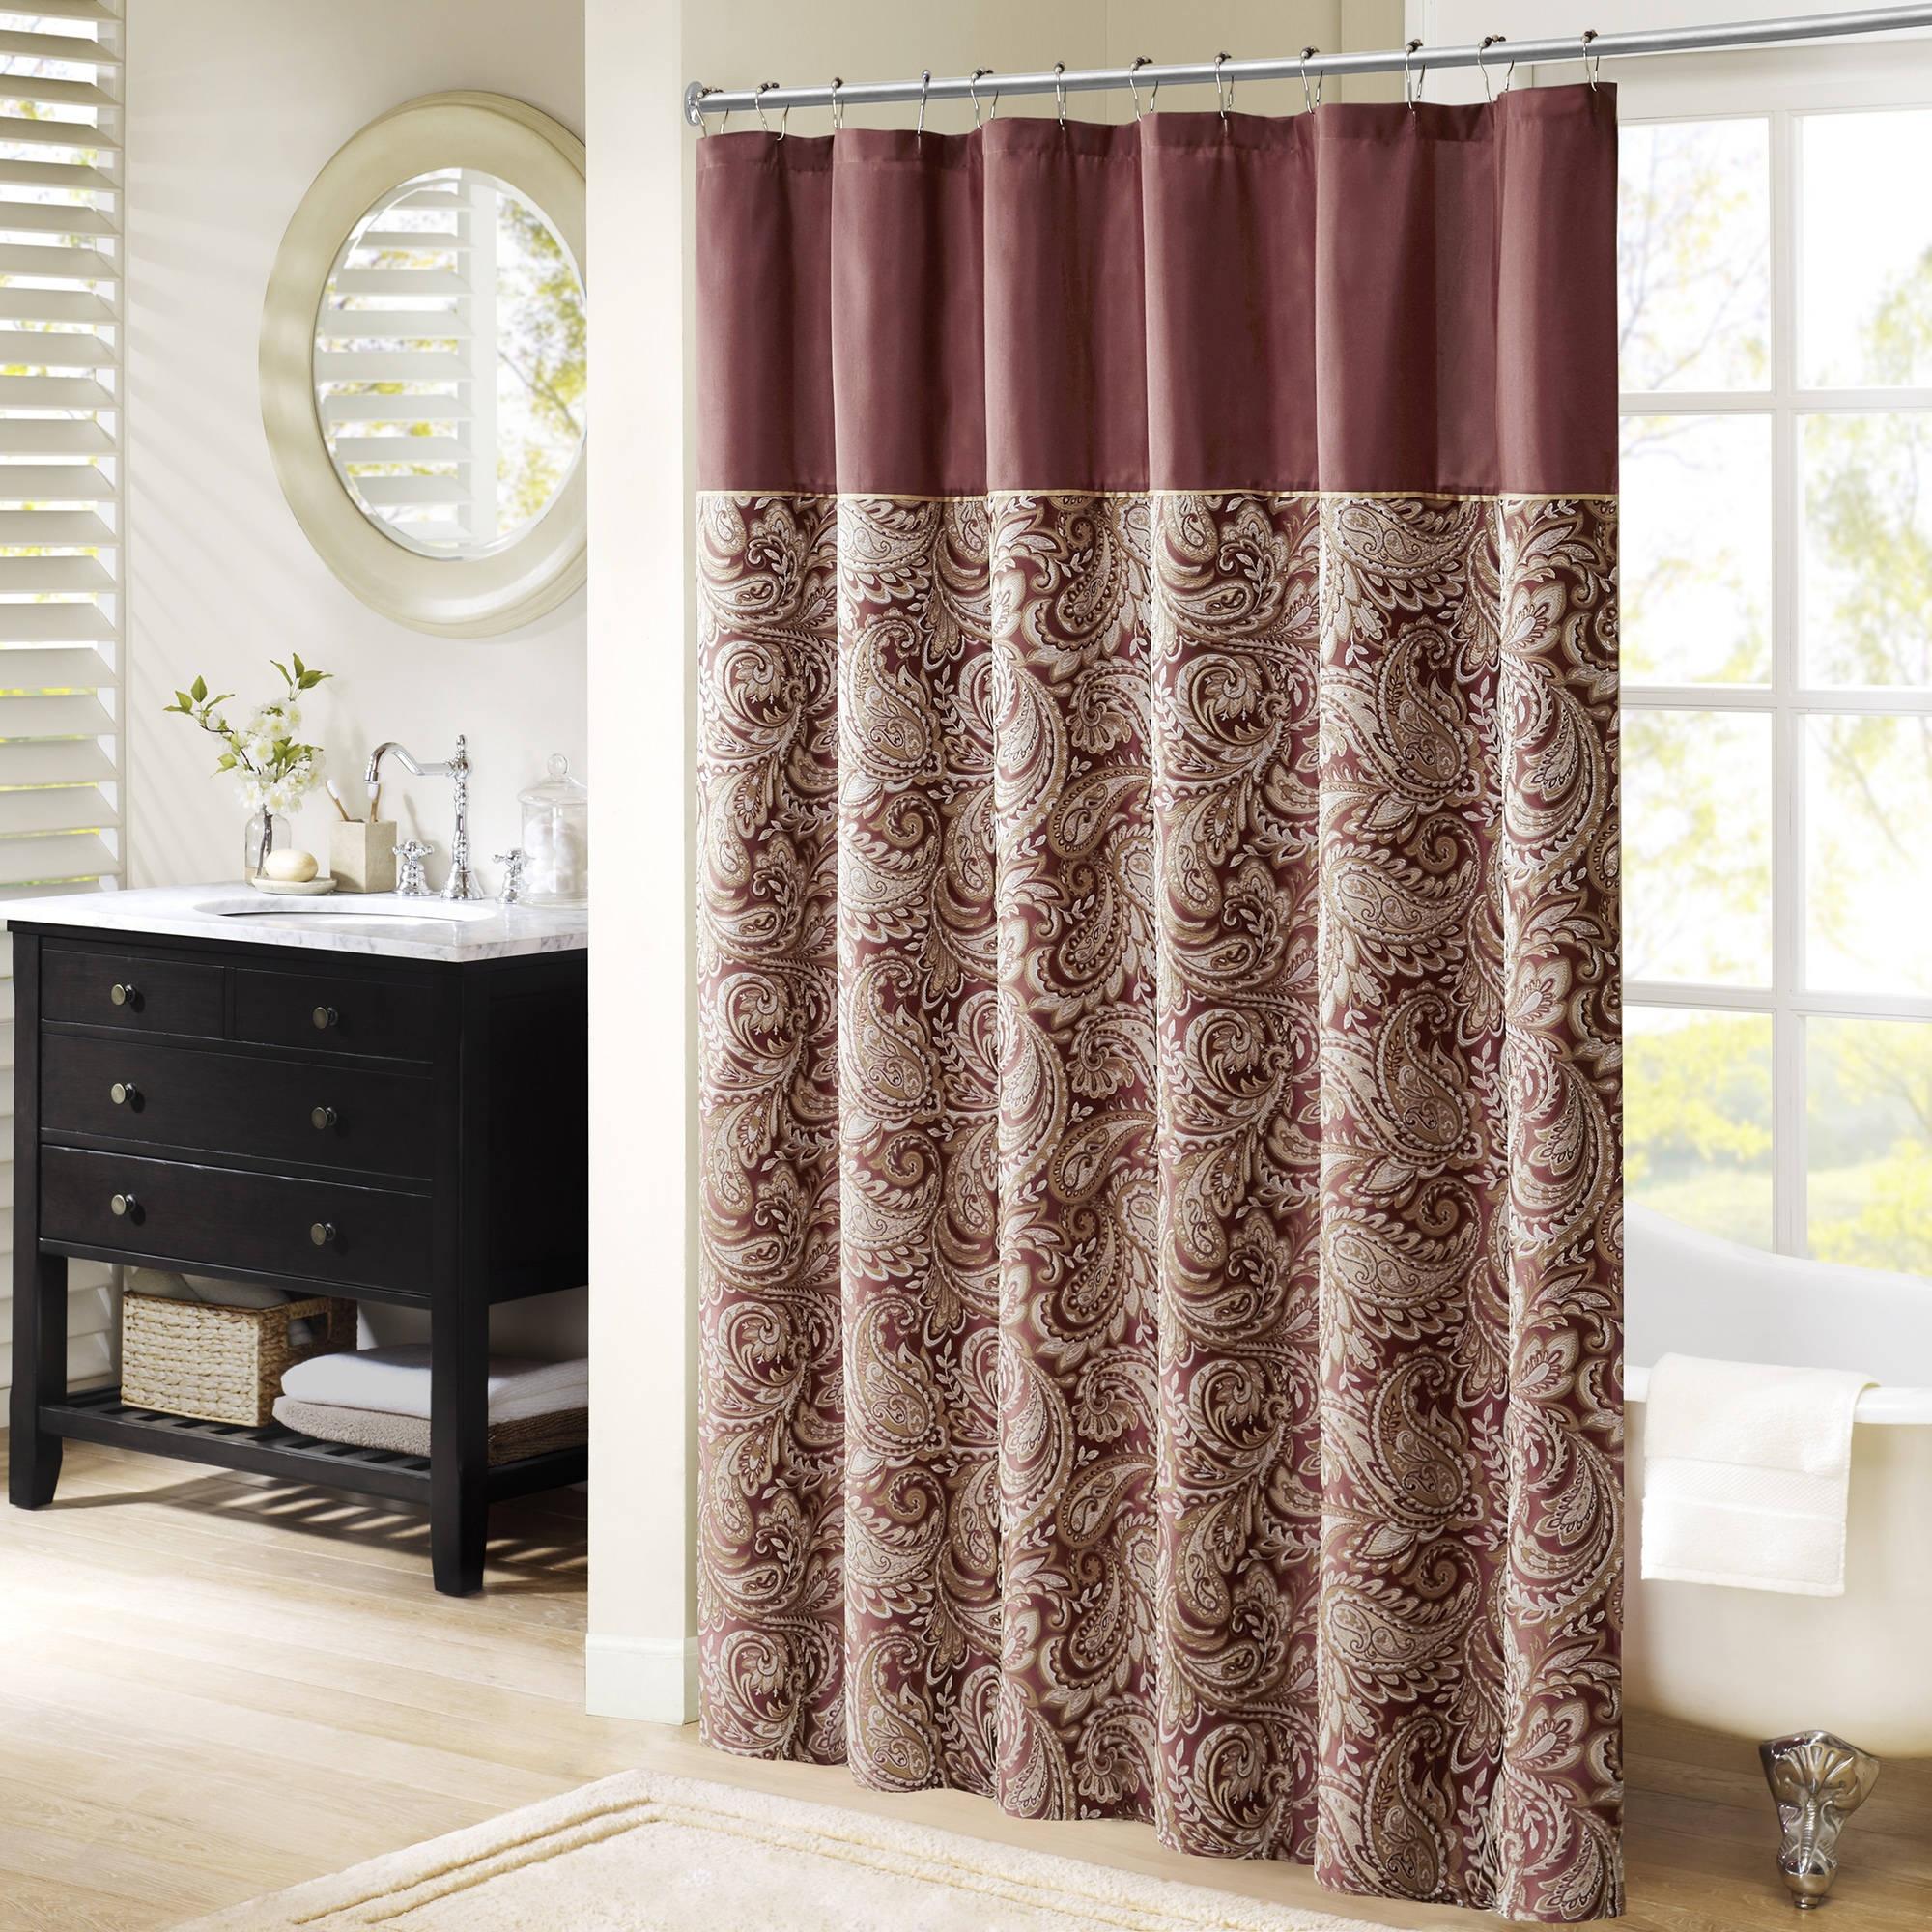 Solid Bright Red Shower Curtain In Dimensions Jpg 2000x2000 Curtains